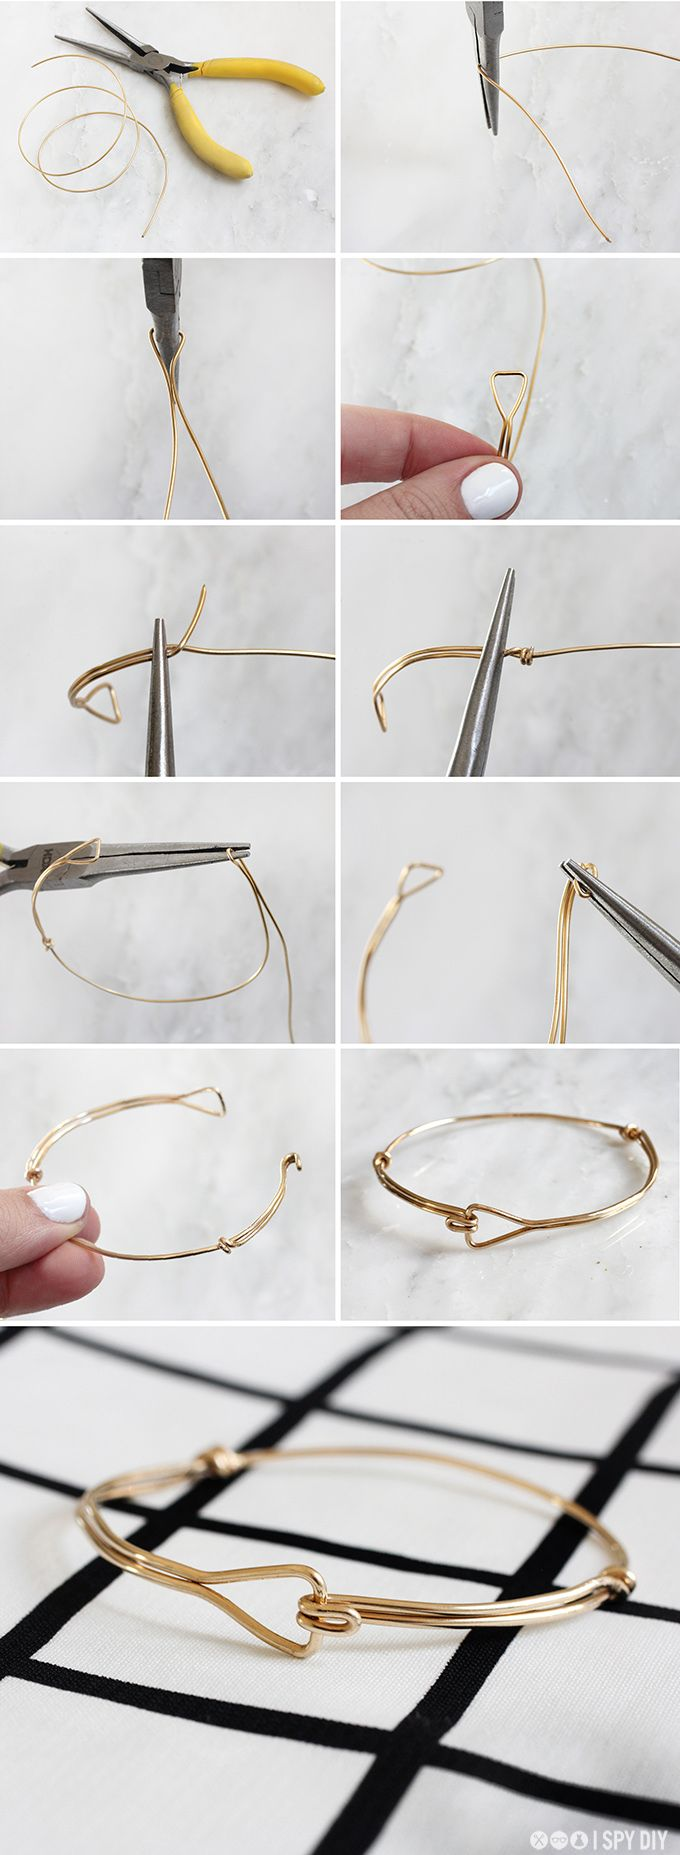 STEPS | Triangle Wire Bracelet | I SPY DIY | I Spy DIY Step-by-Step ...